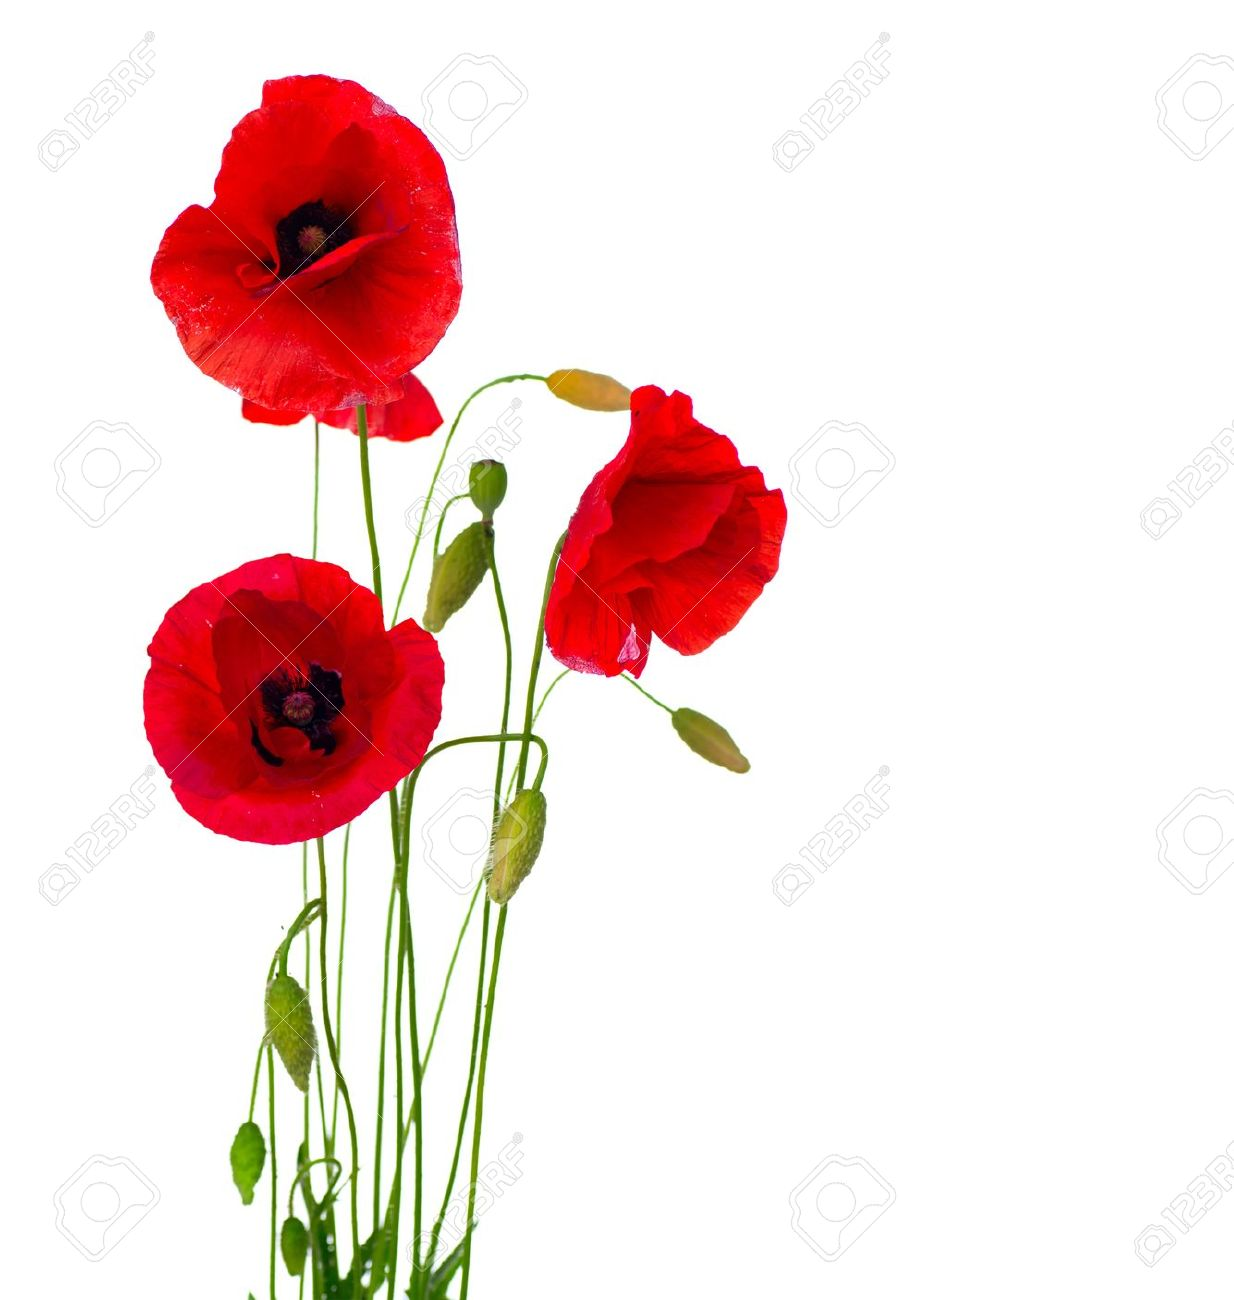 Red poppy flower isolated on a white background stock photo picture red poppy flower isolated on a white background mightylinksfo Images